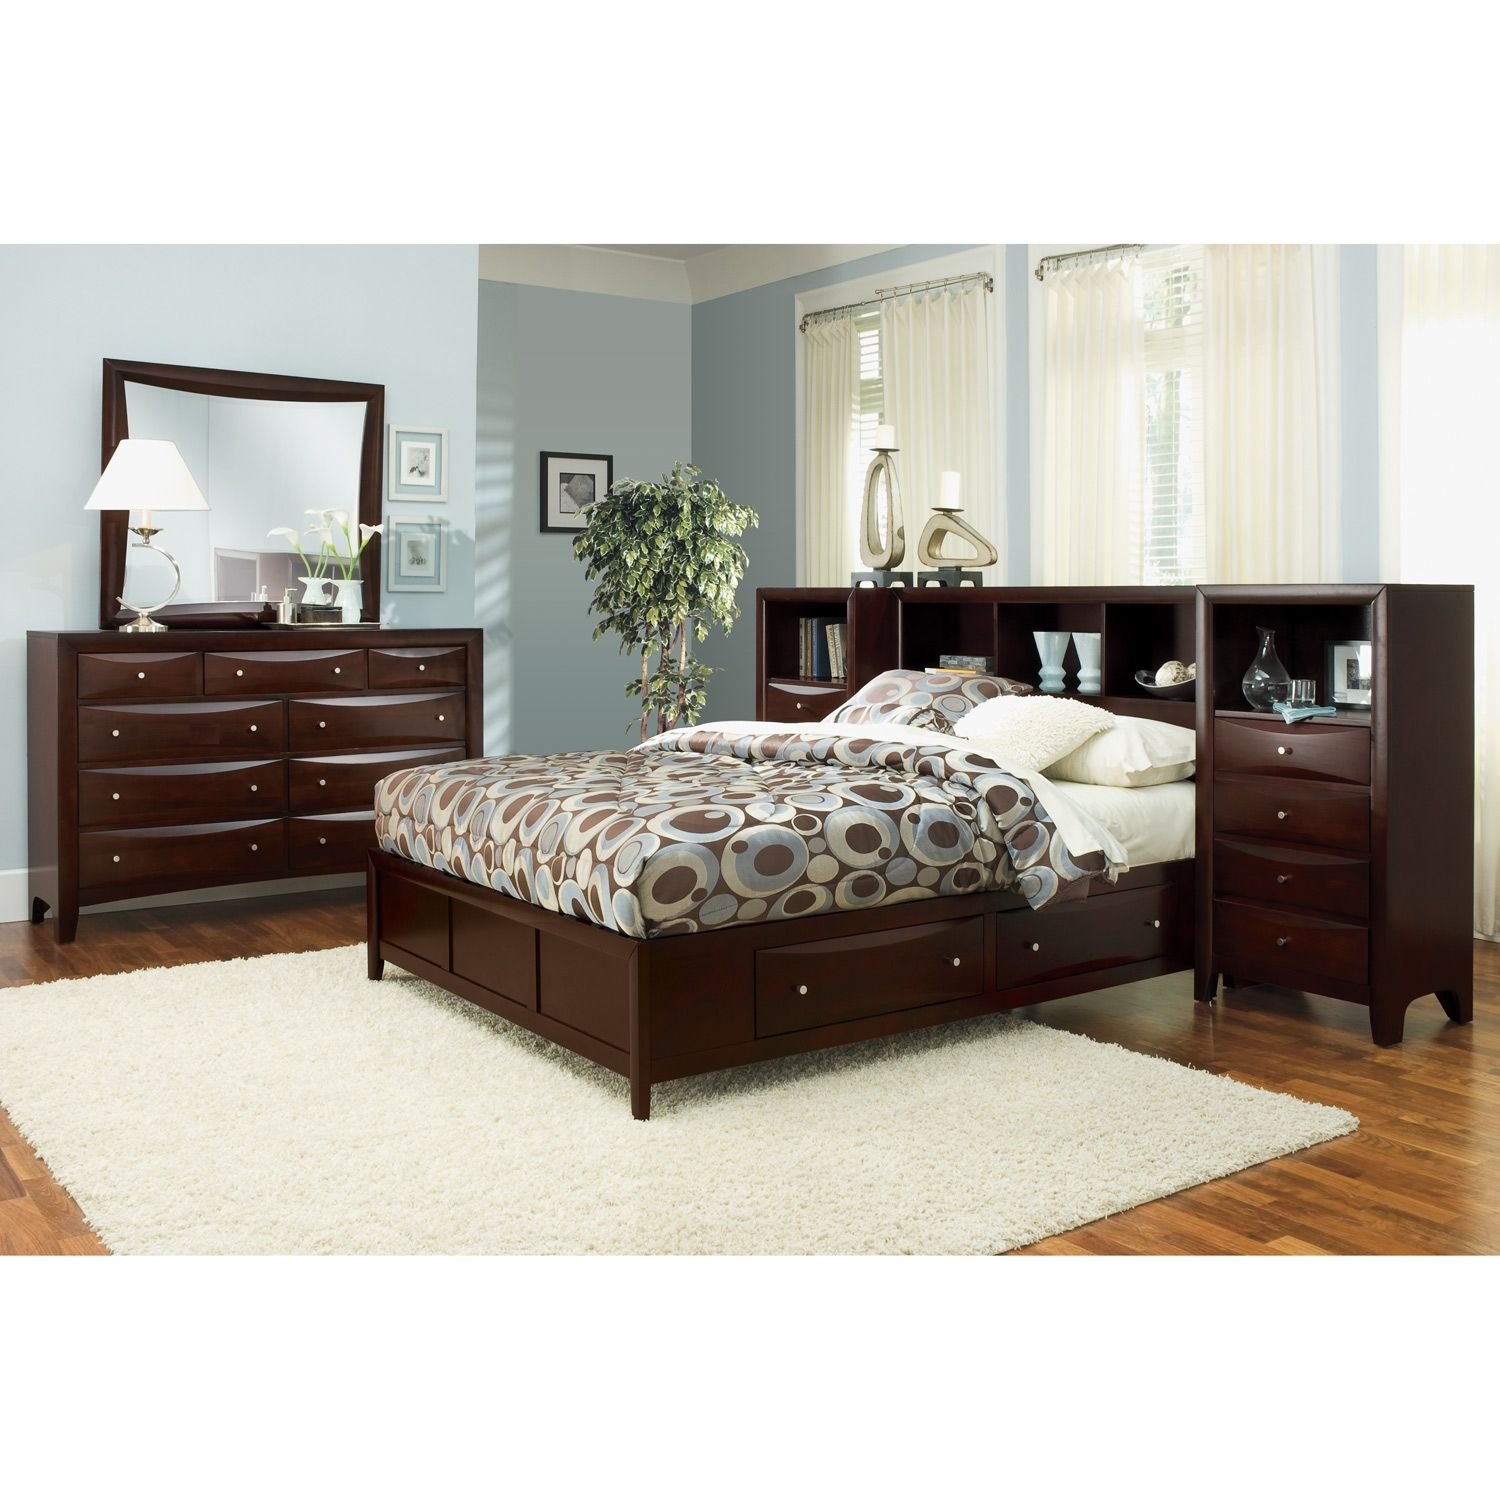 Bedroom Sets Value City clarion bedroom queen wall bed with piers - value city furniture